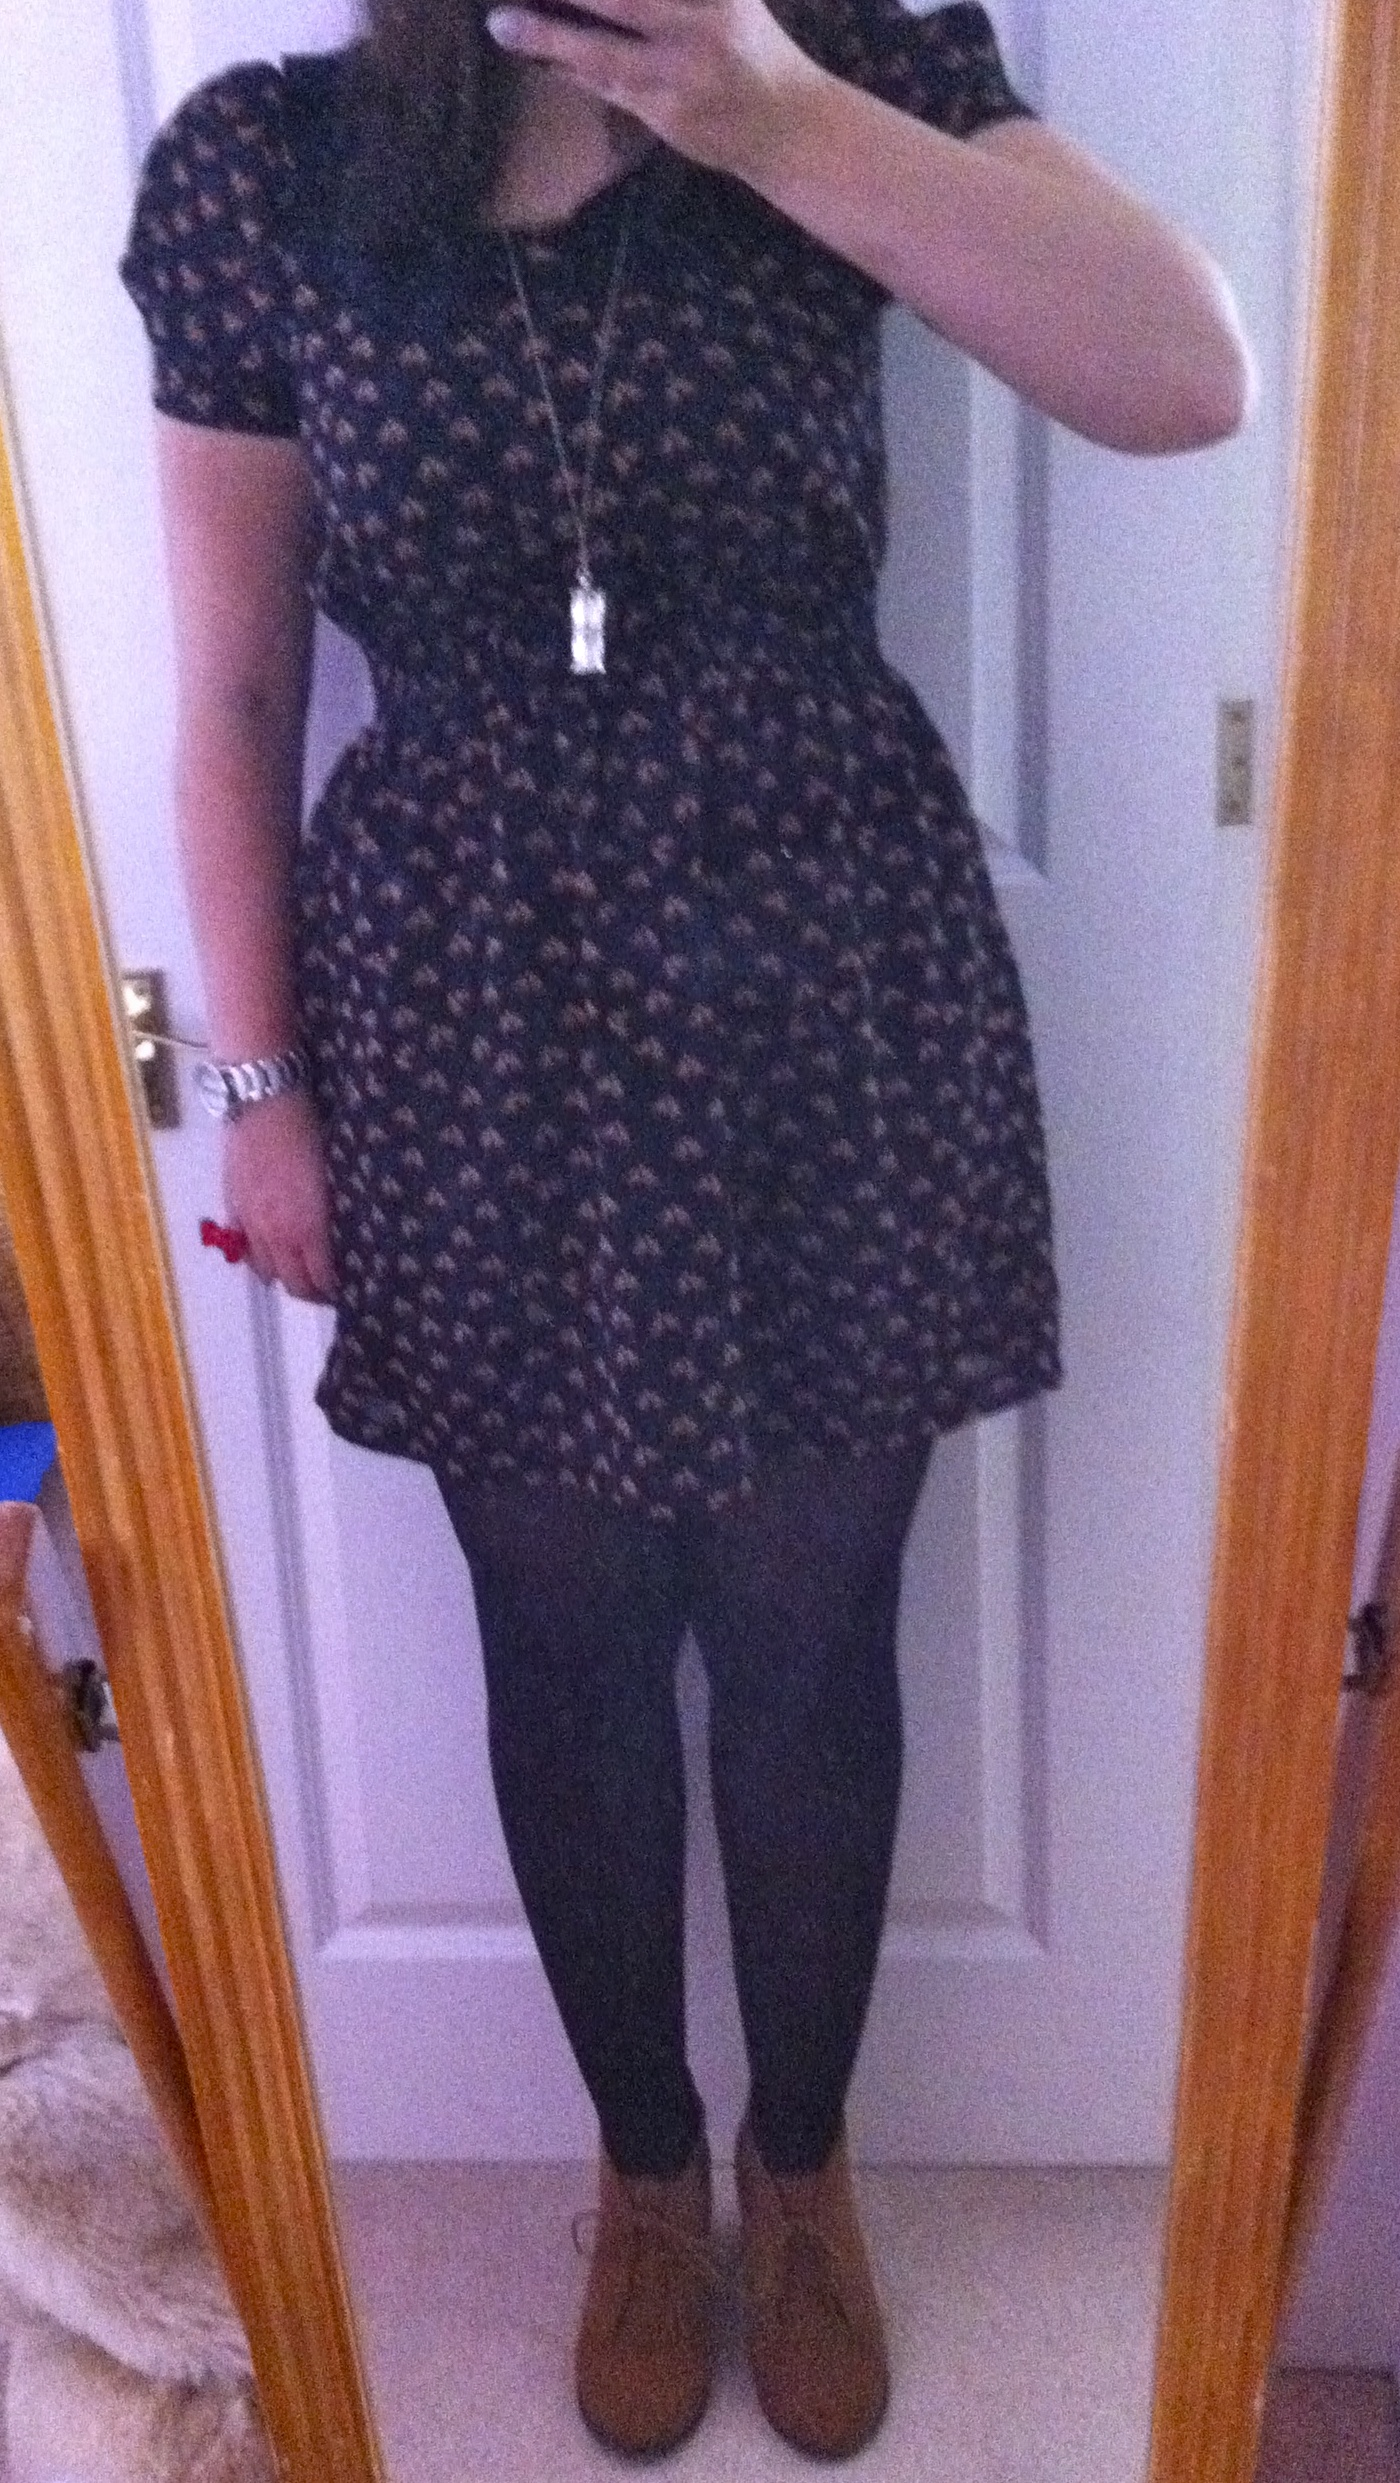 Outfit post: What I Wore on Christmas Day